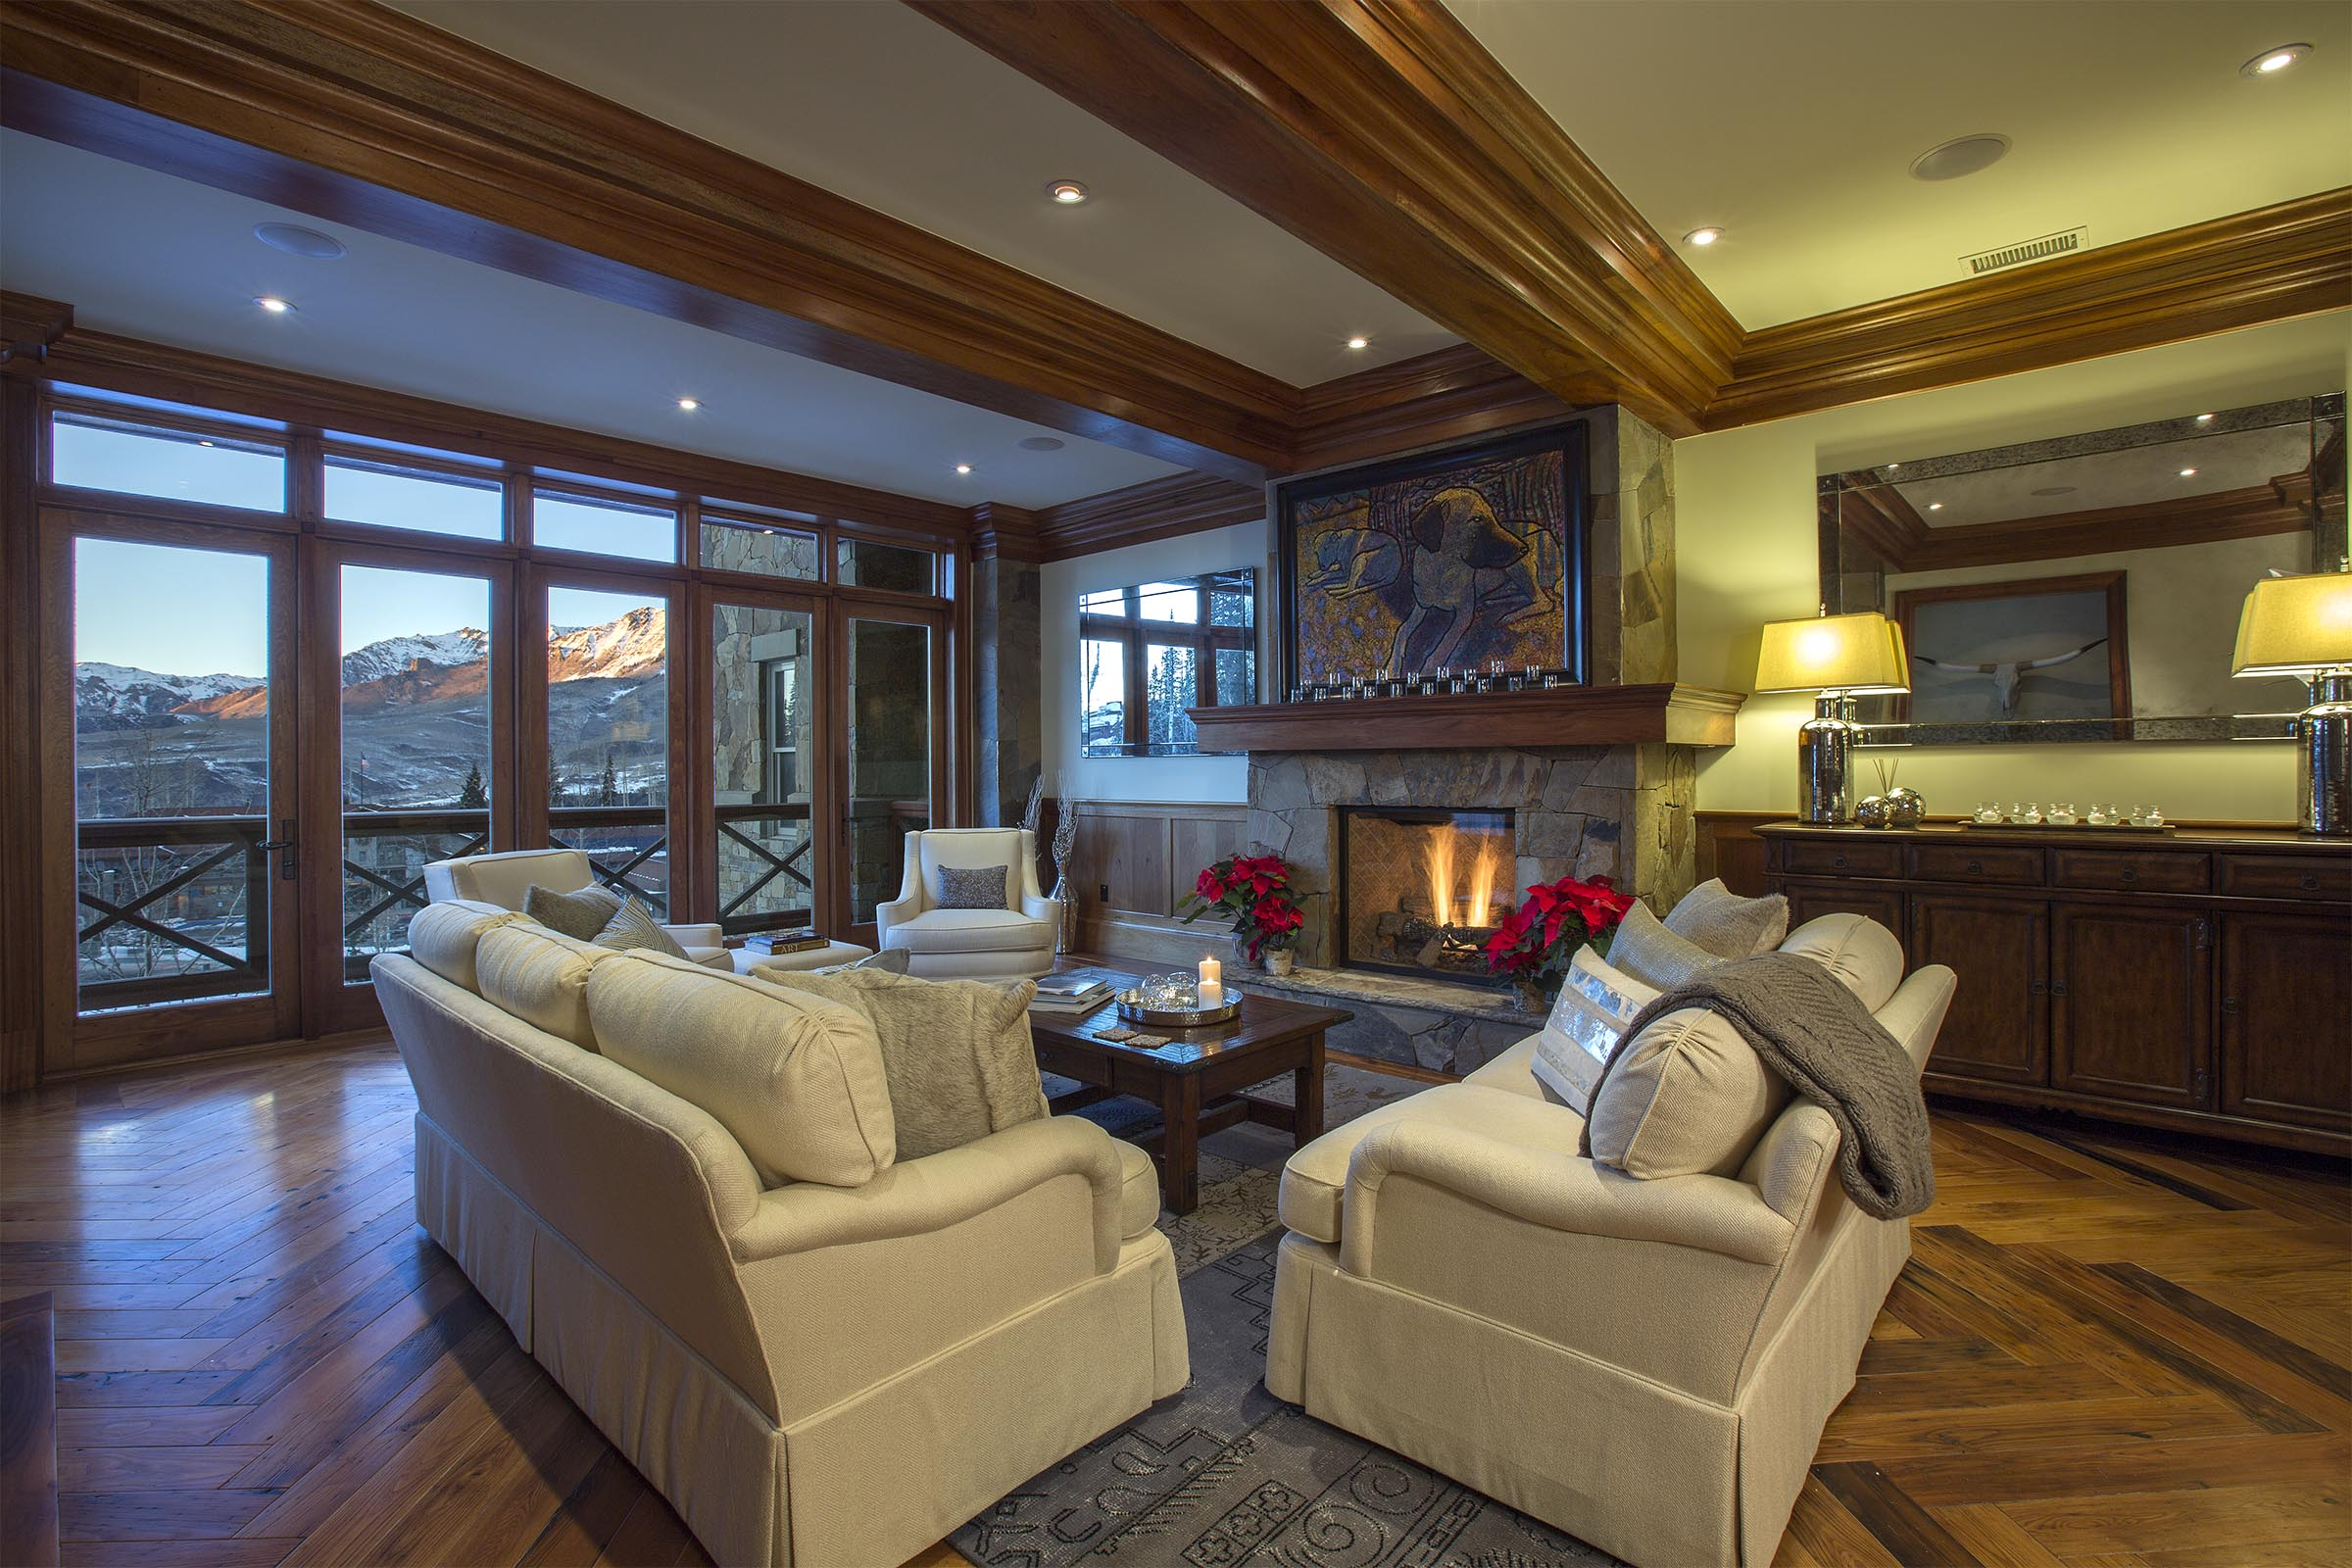 Condominium for Sale at Lorain III, Unit 6 111 San Joaquin Road Lorian III, Unit 6 Mountain Village, Telluride, Colorado 81435 United States